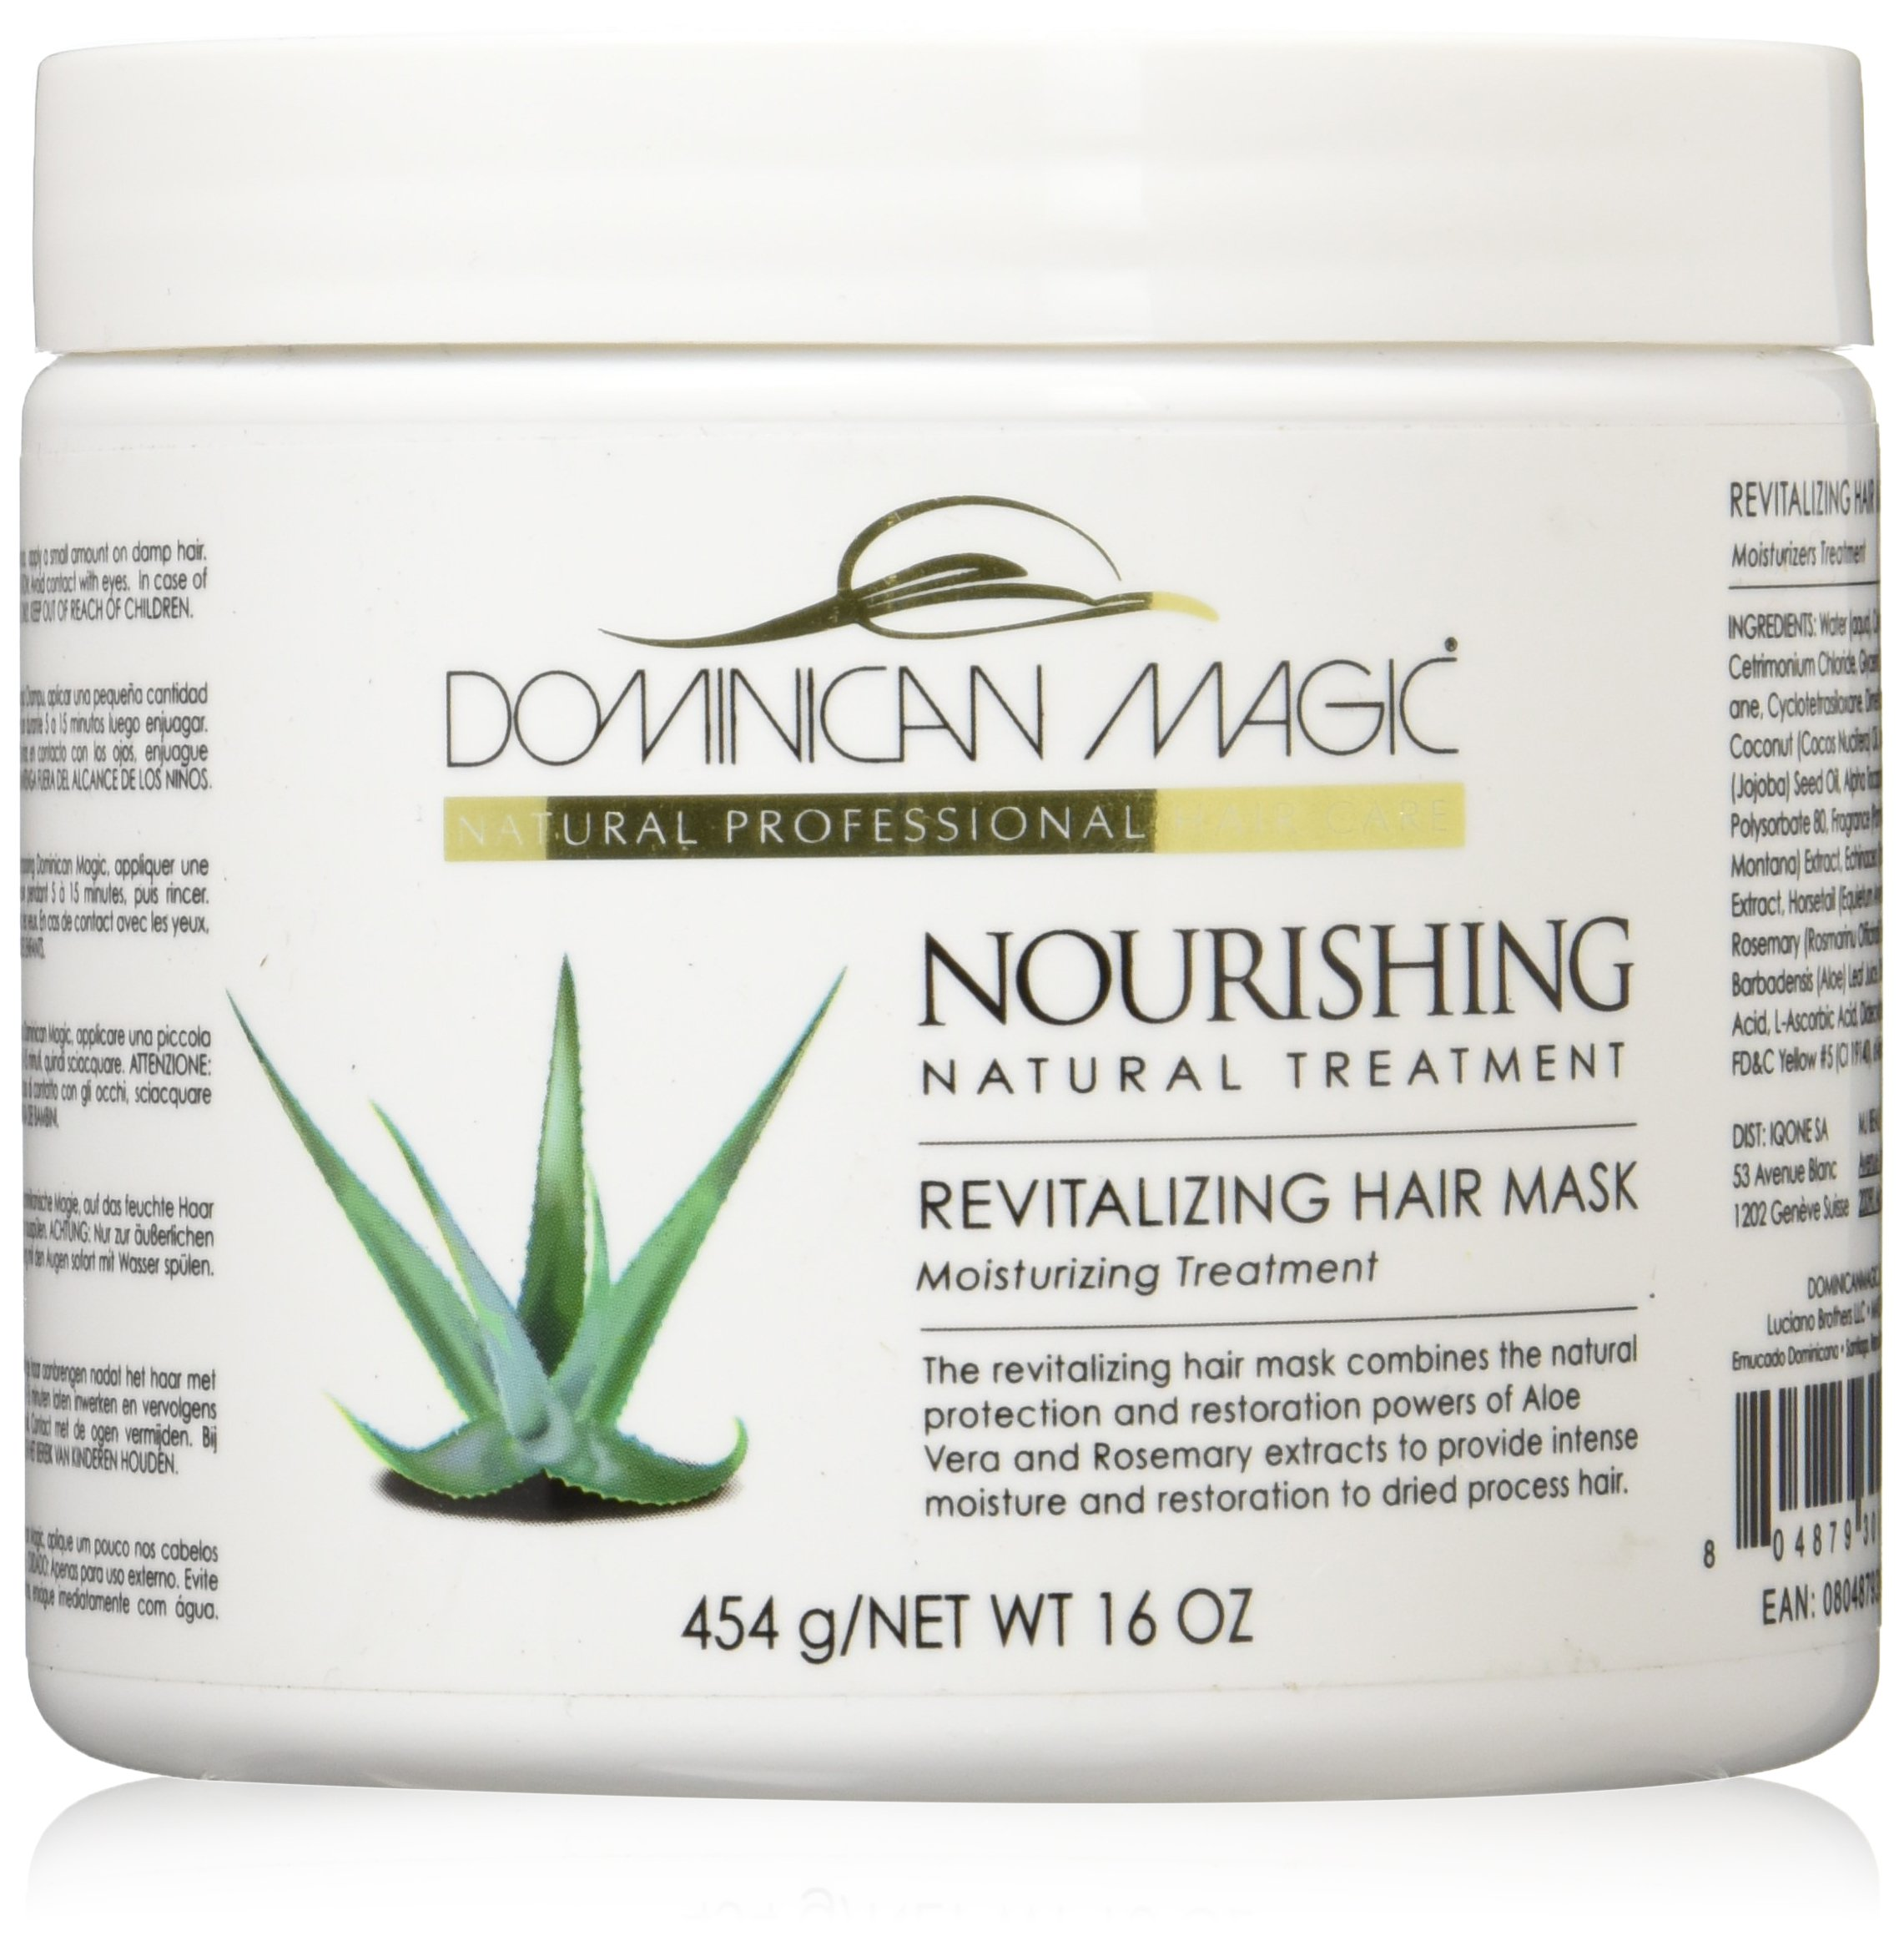 Dominican Magic Revitalizing Hair Mask, 16 Ounce